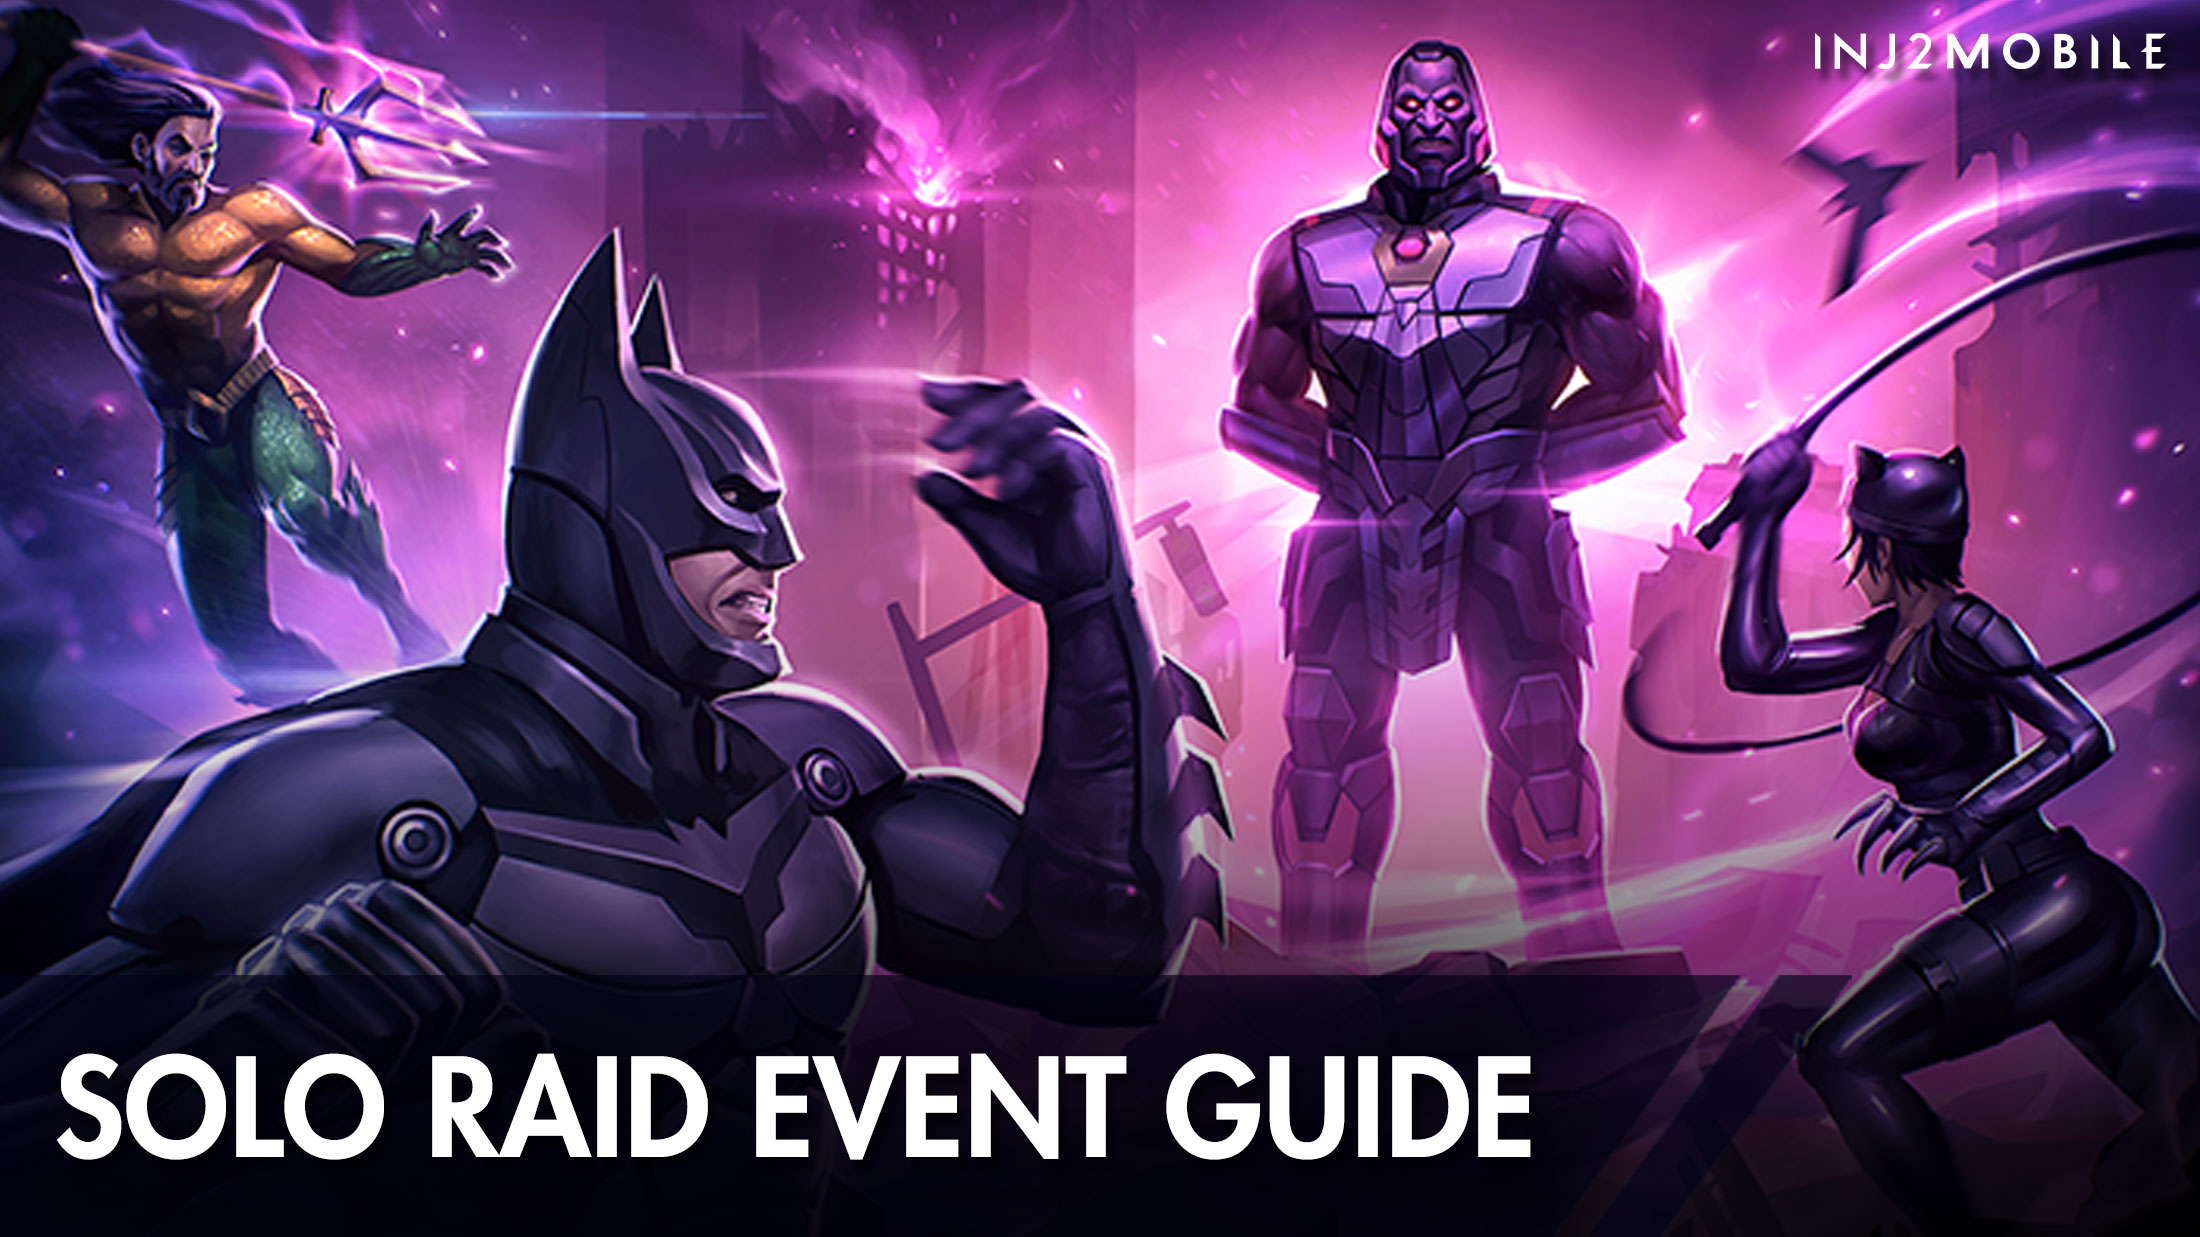 SOLO_RAID_EVENT_GUIDE.jpg